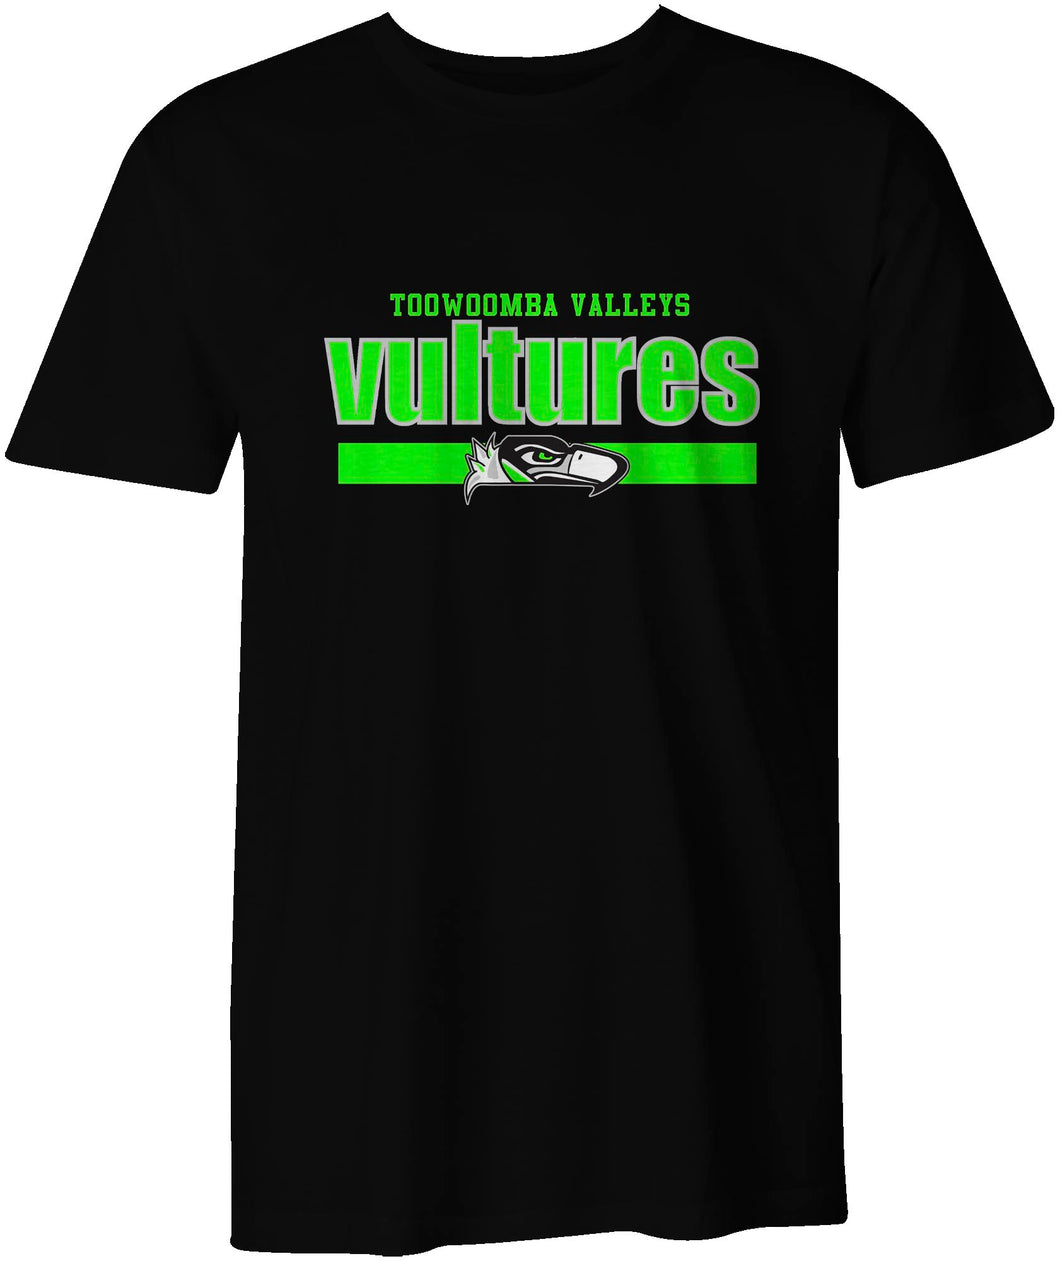 Toowoomba Valleys Vultures Box Style T-Shirt